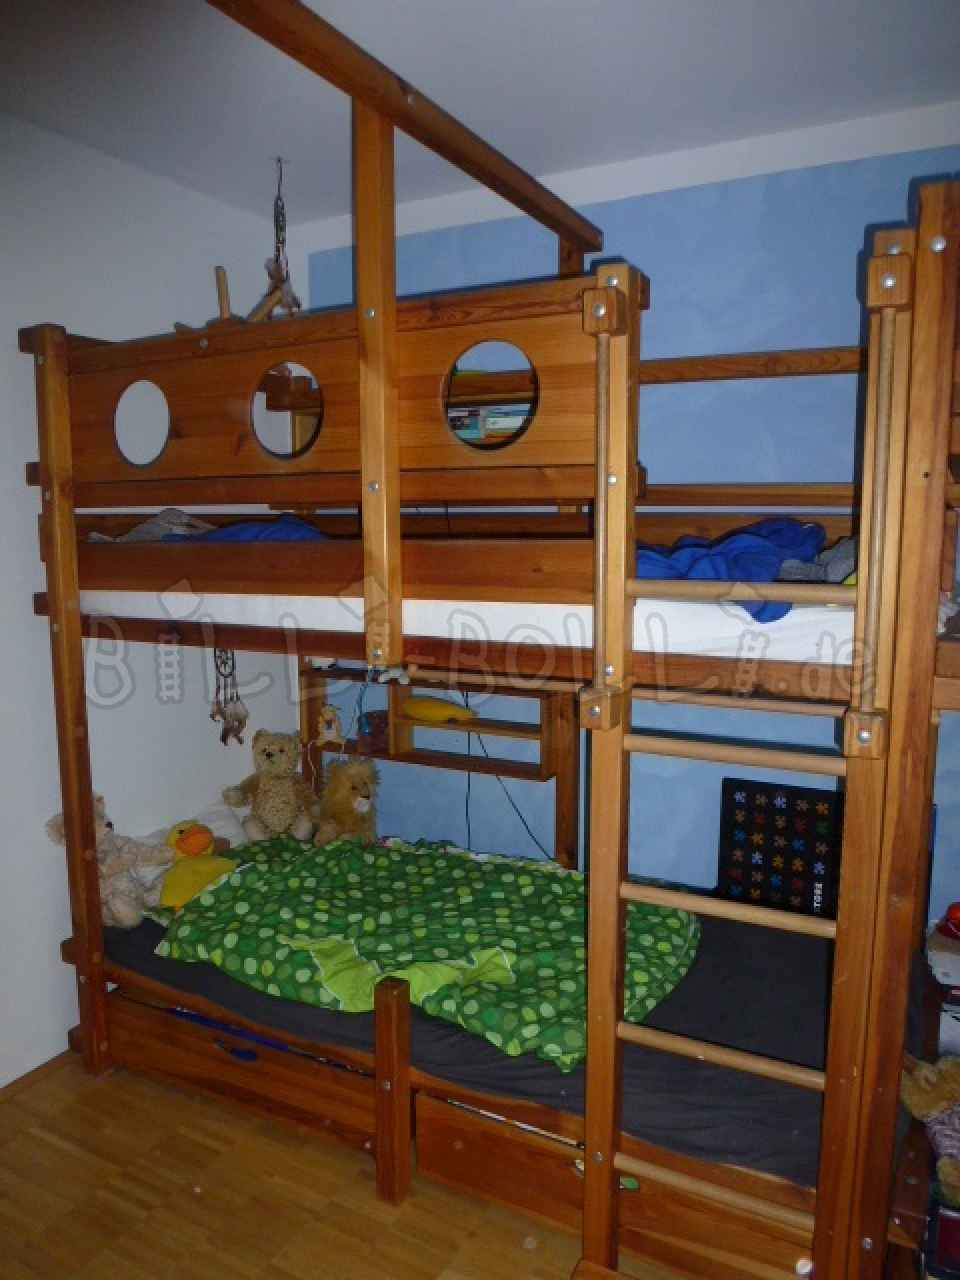 secondhand billi bolli kinderm bel. Black Bedroom Furniture Sets. Home Design Ideas